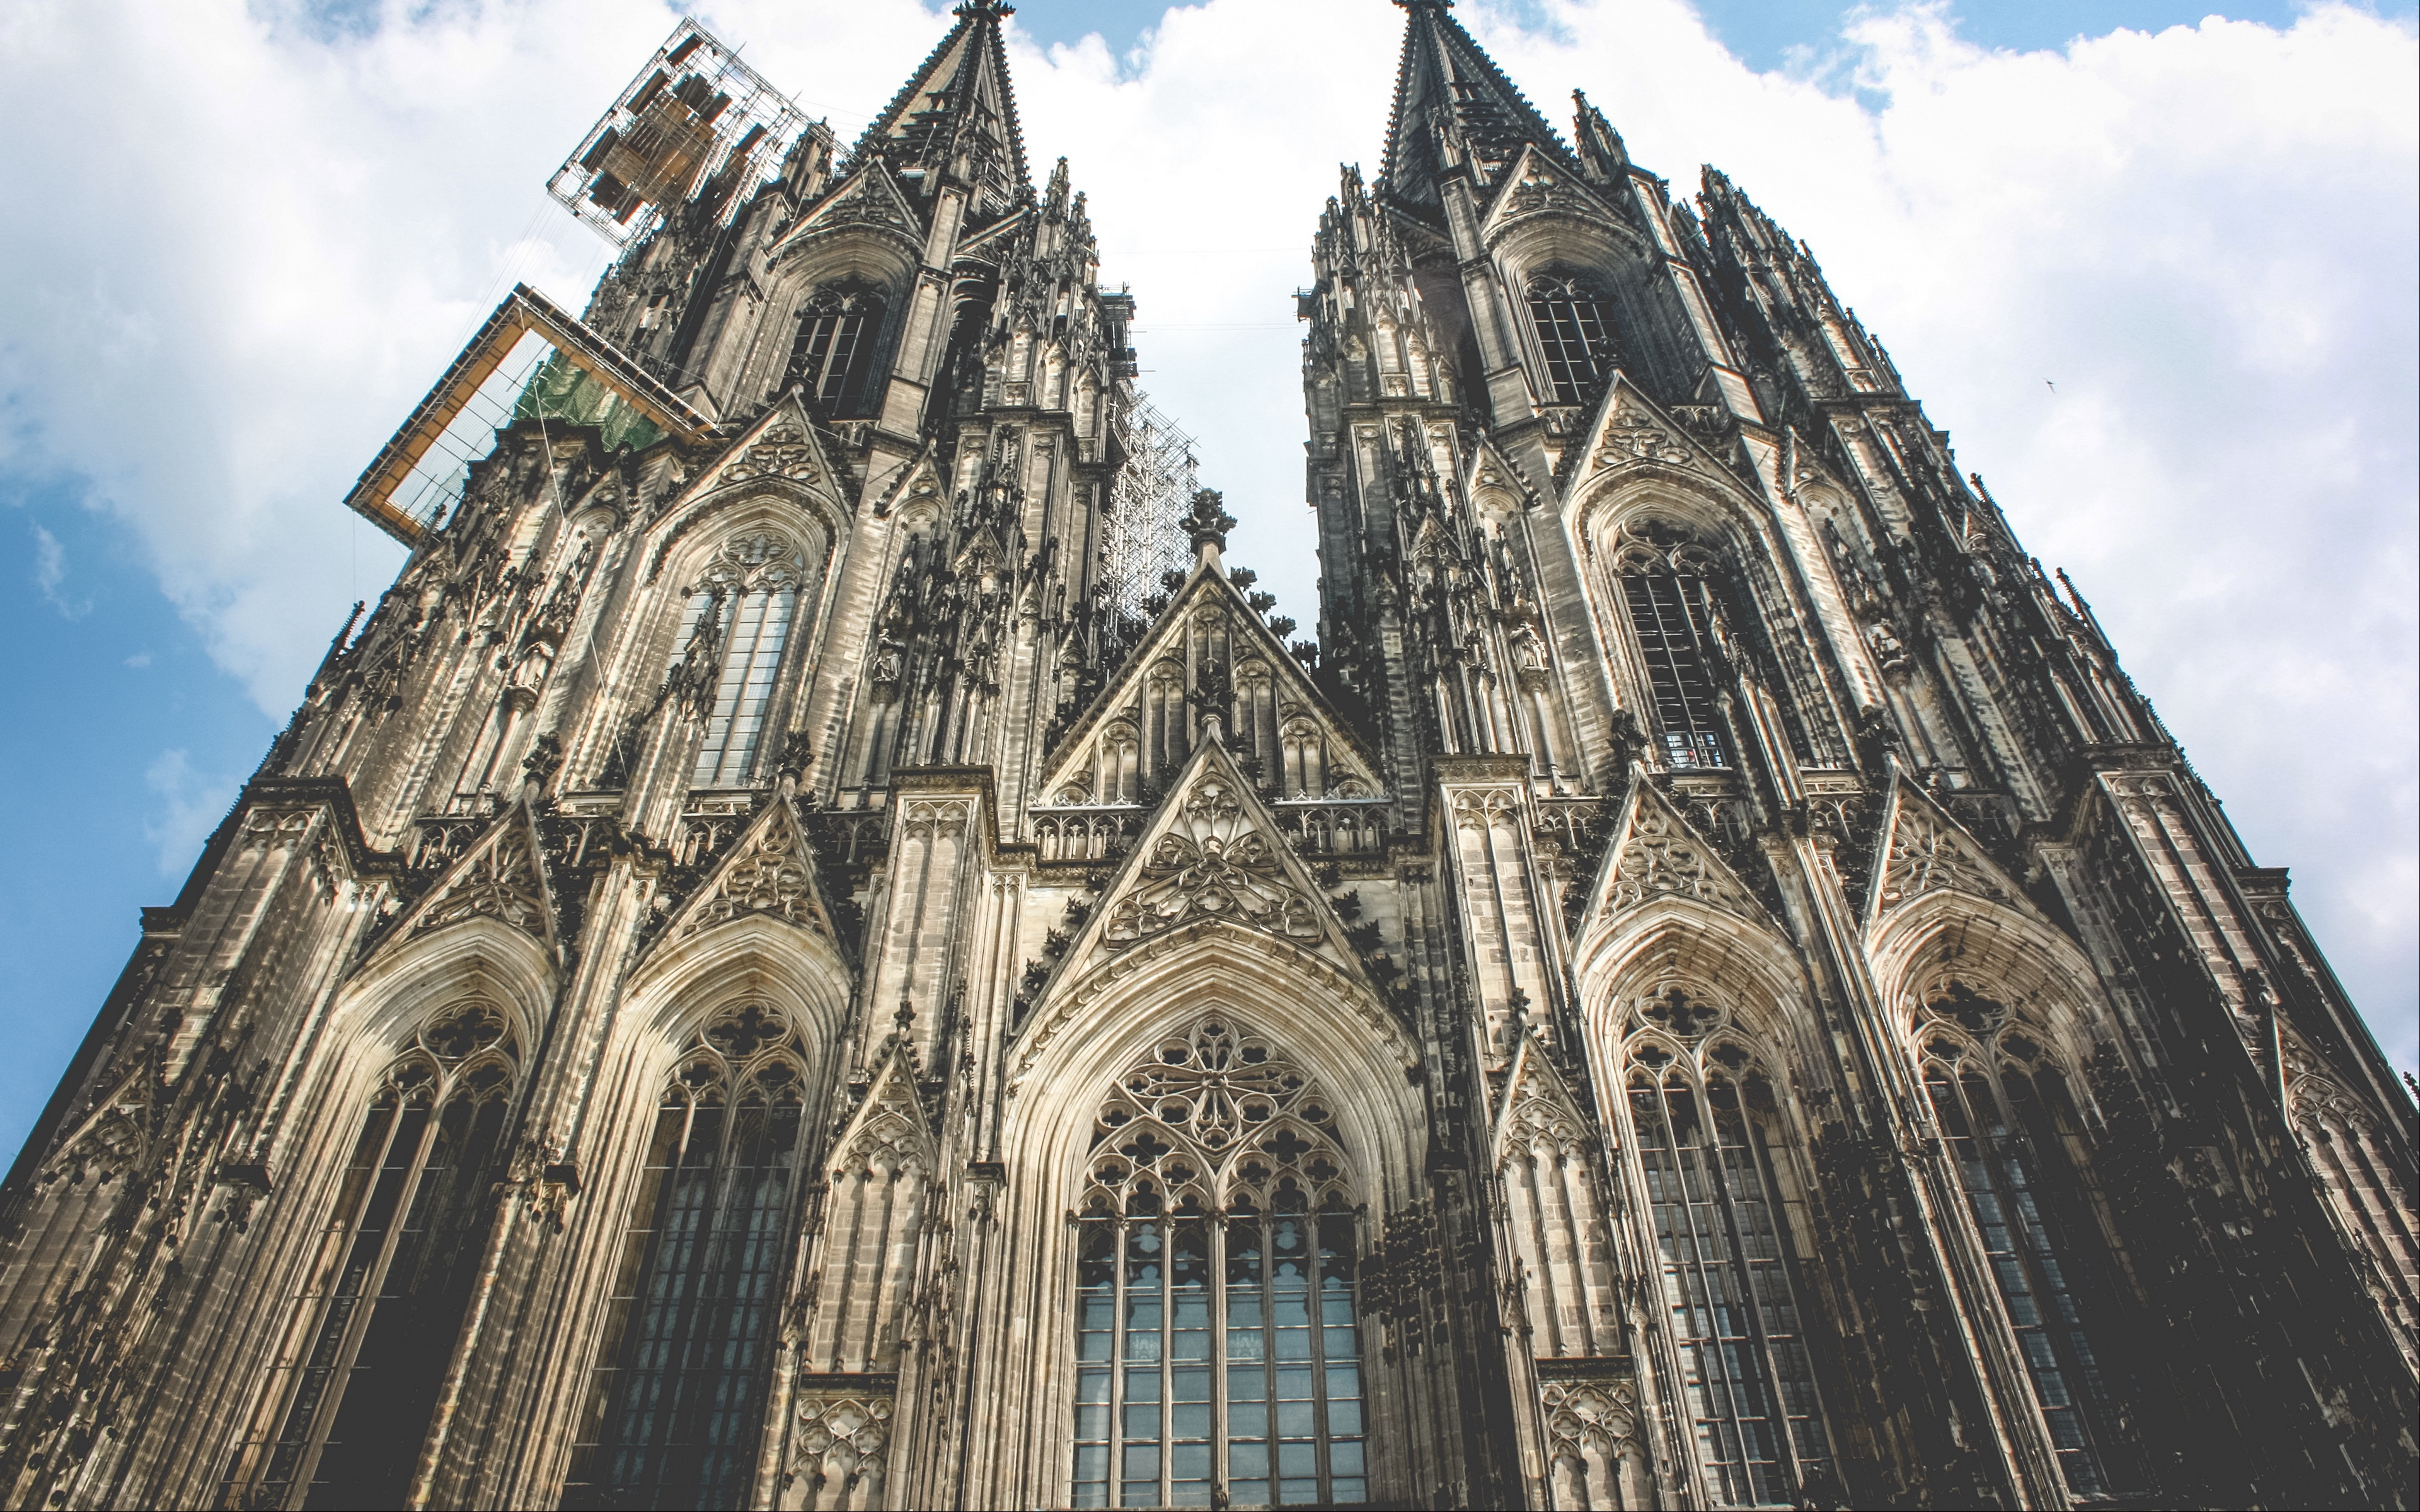 Download wallpaper 3840x2400 cathedral church germany cologne 3840x2400